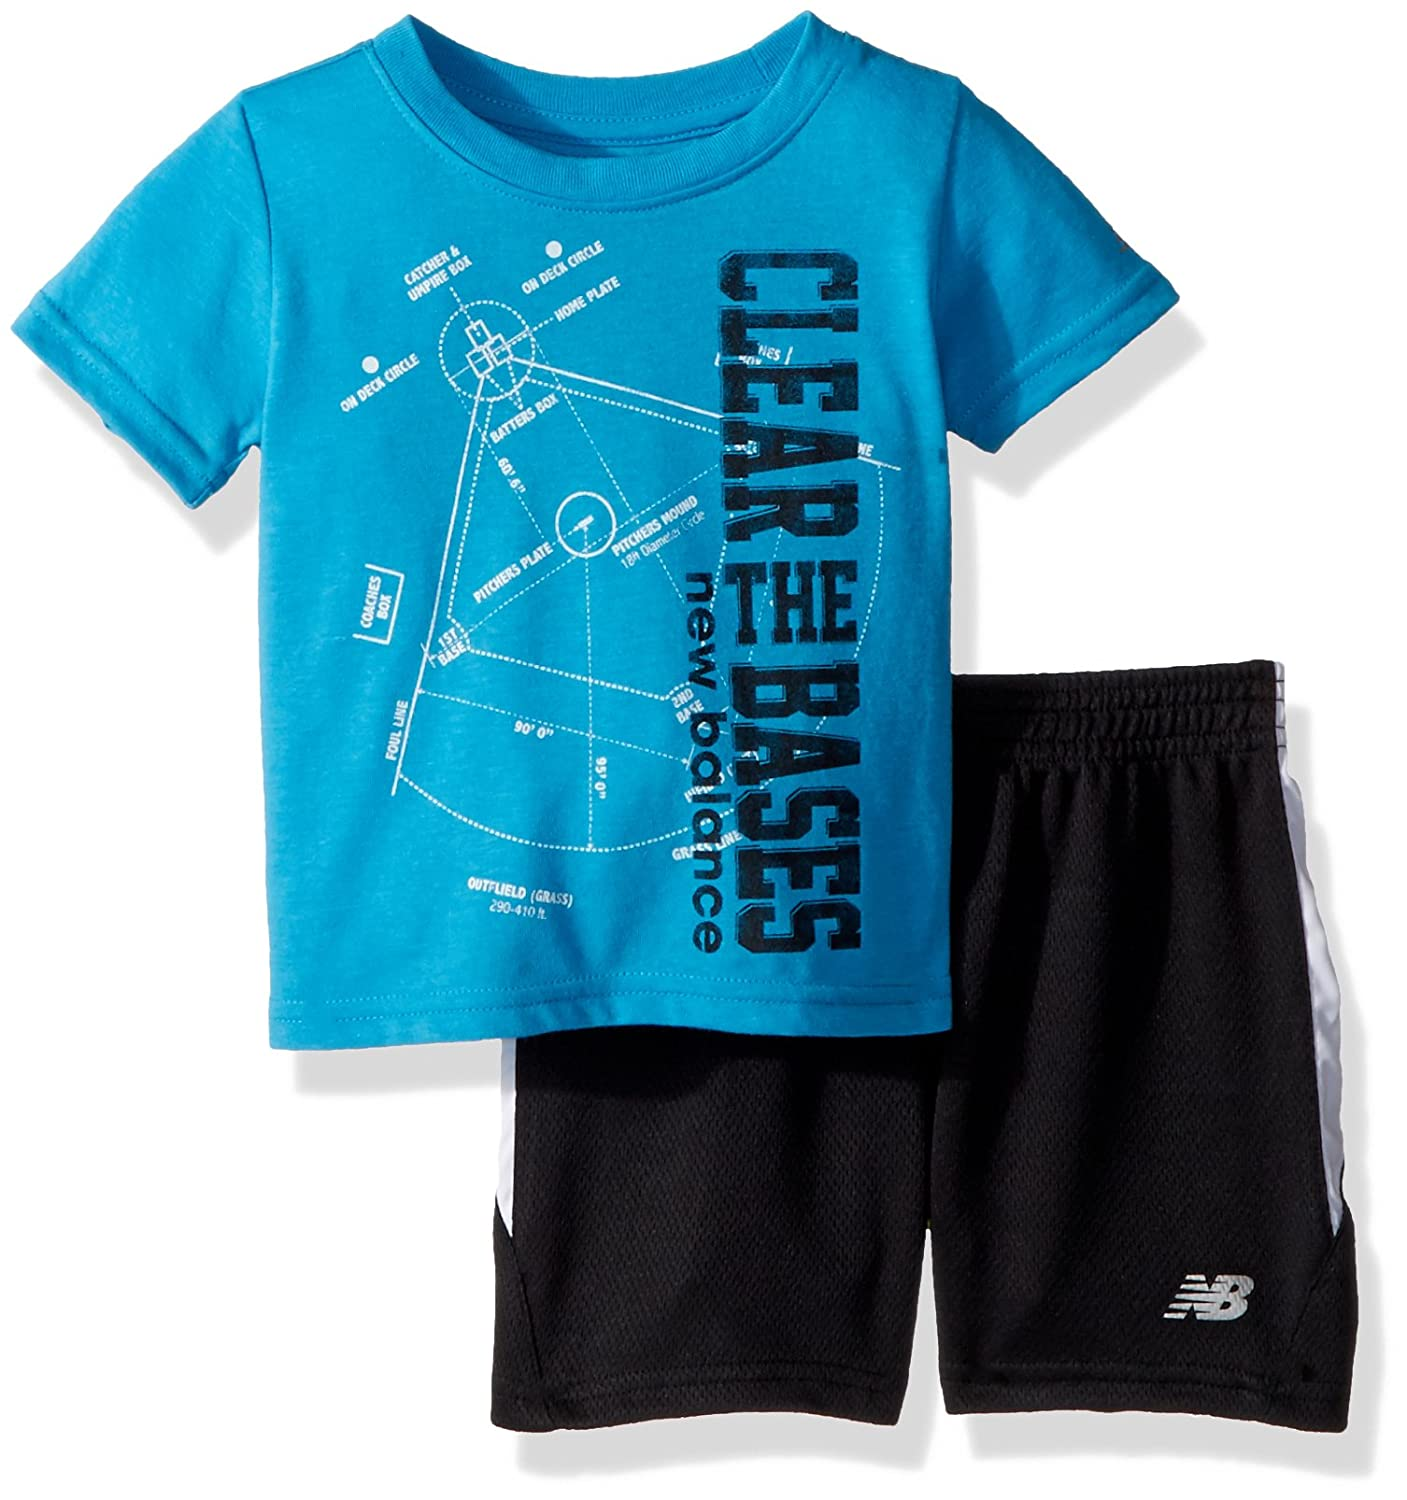 New Balance Boys' Athletic Tee and Short Set 12509